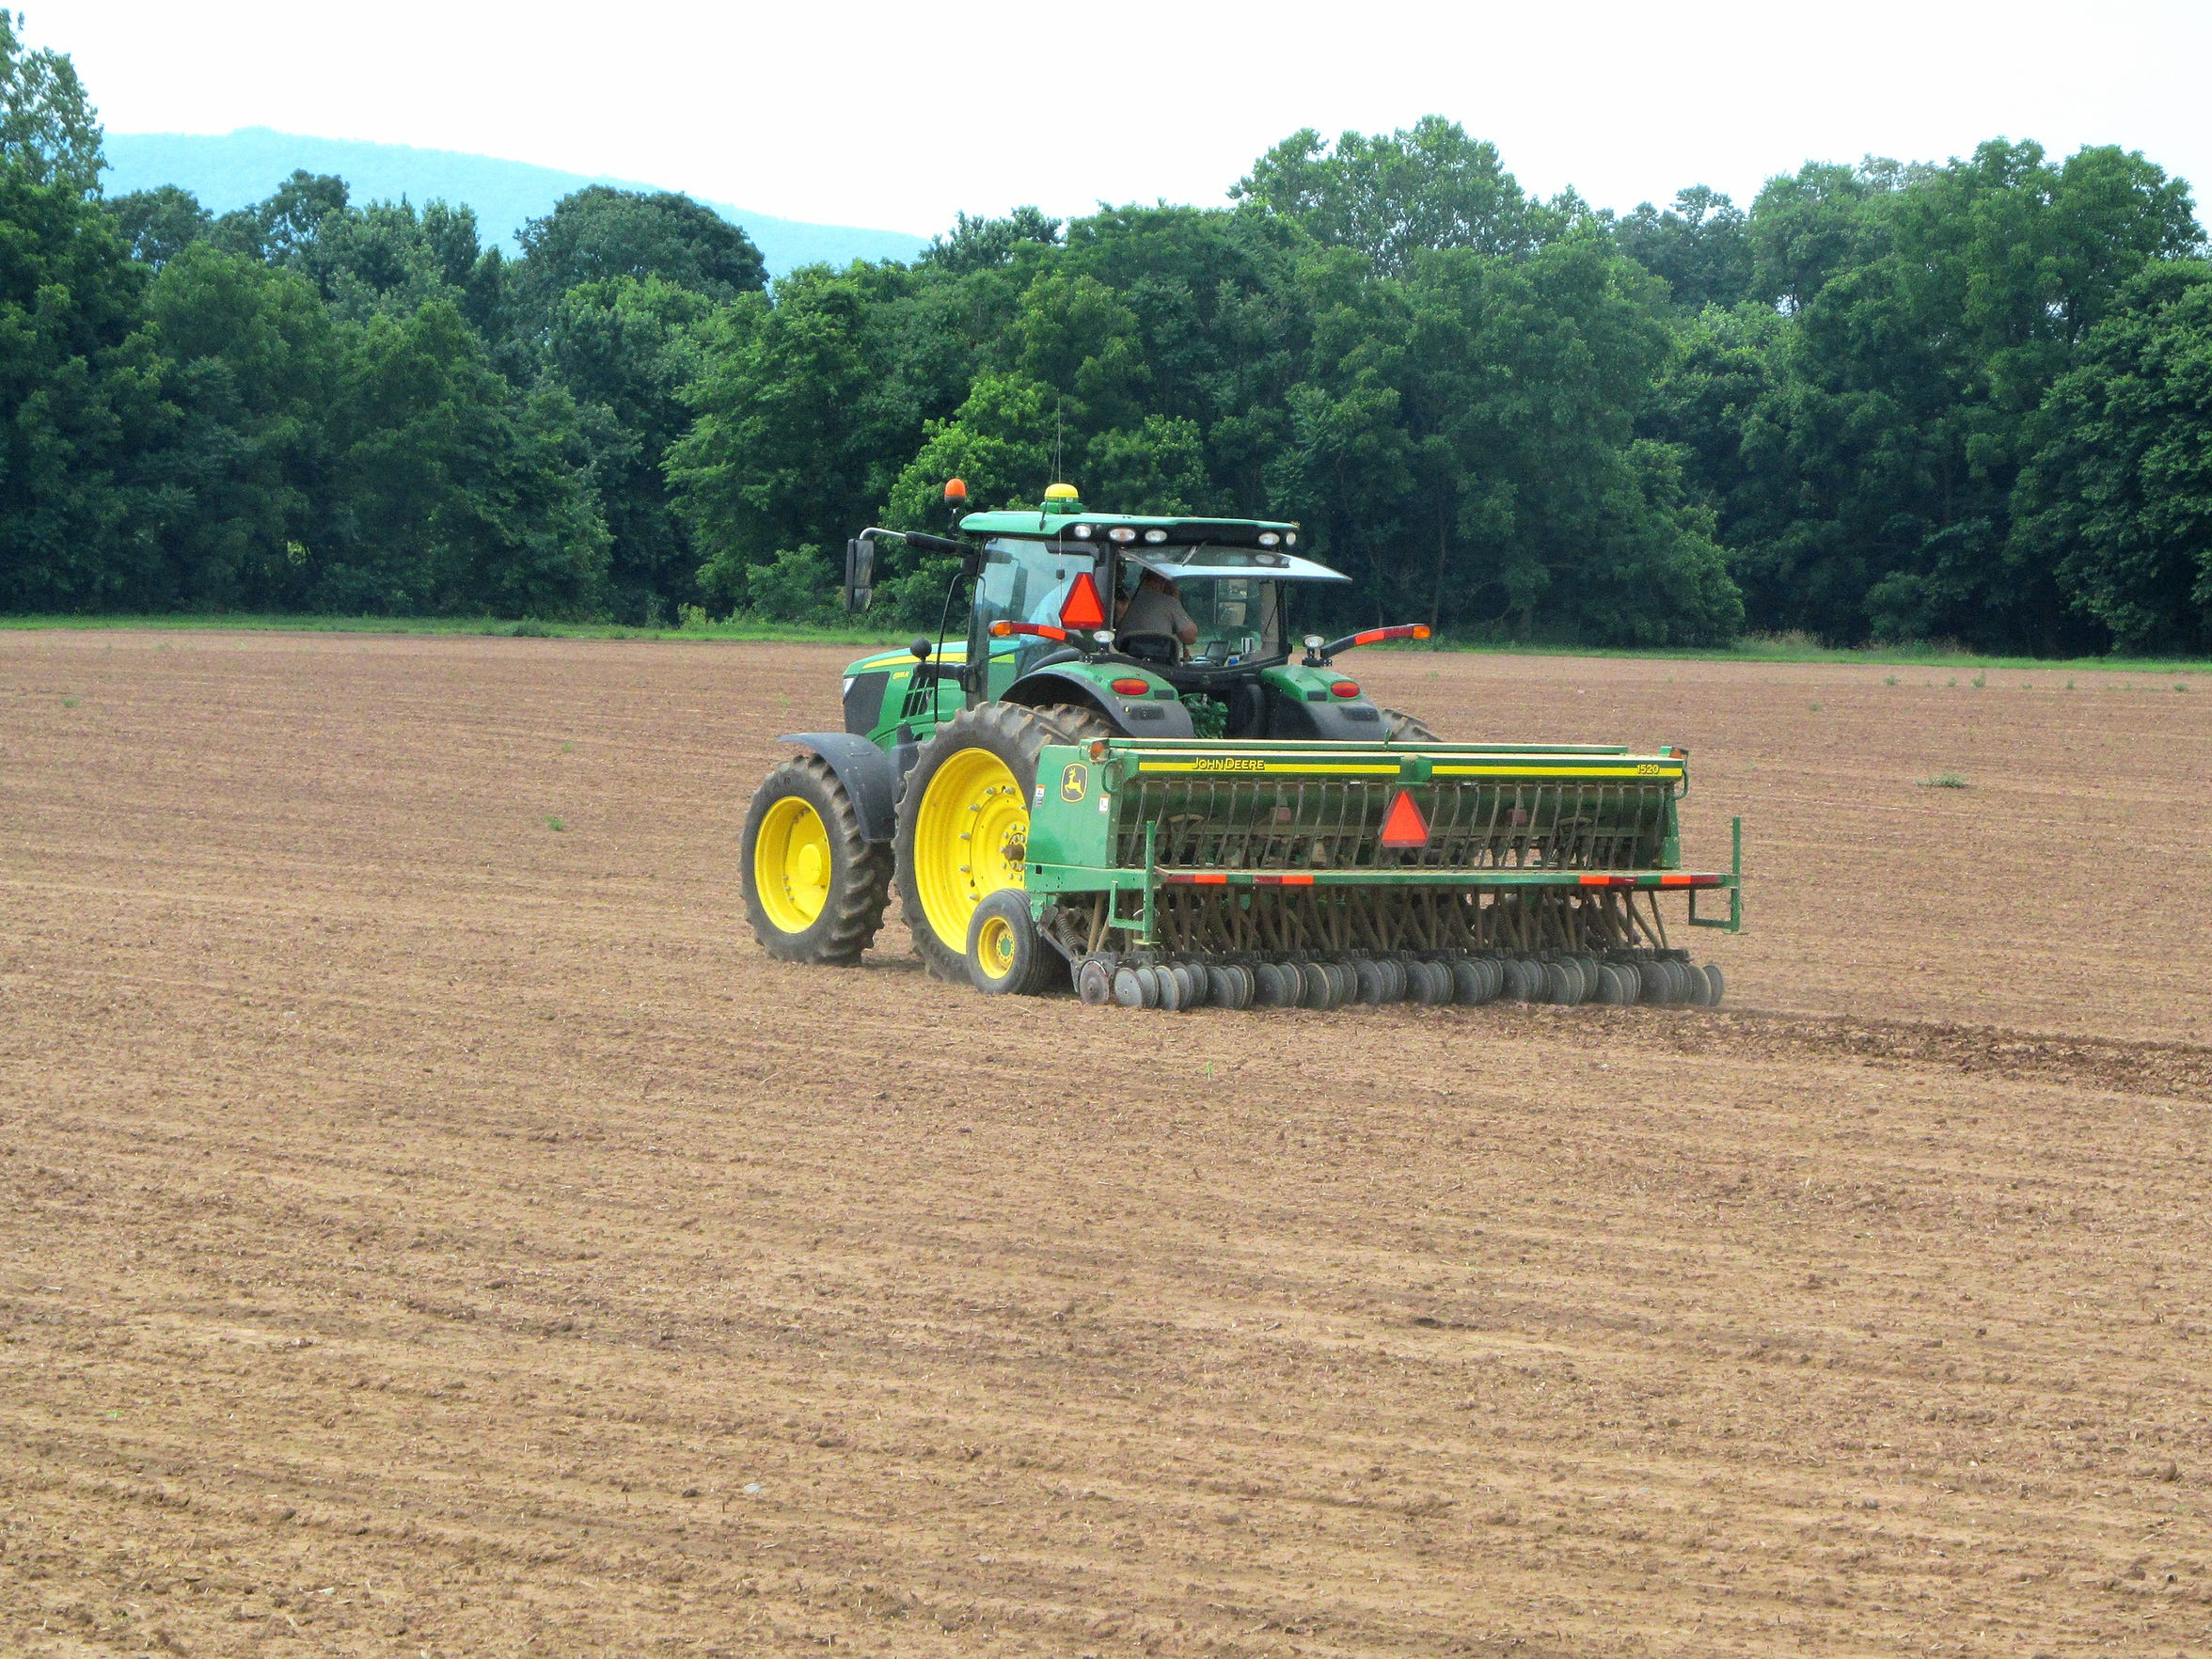 A tractor works a field as hemp planting takes place